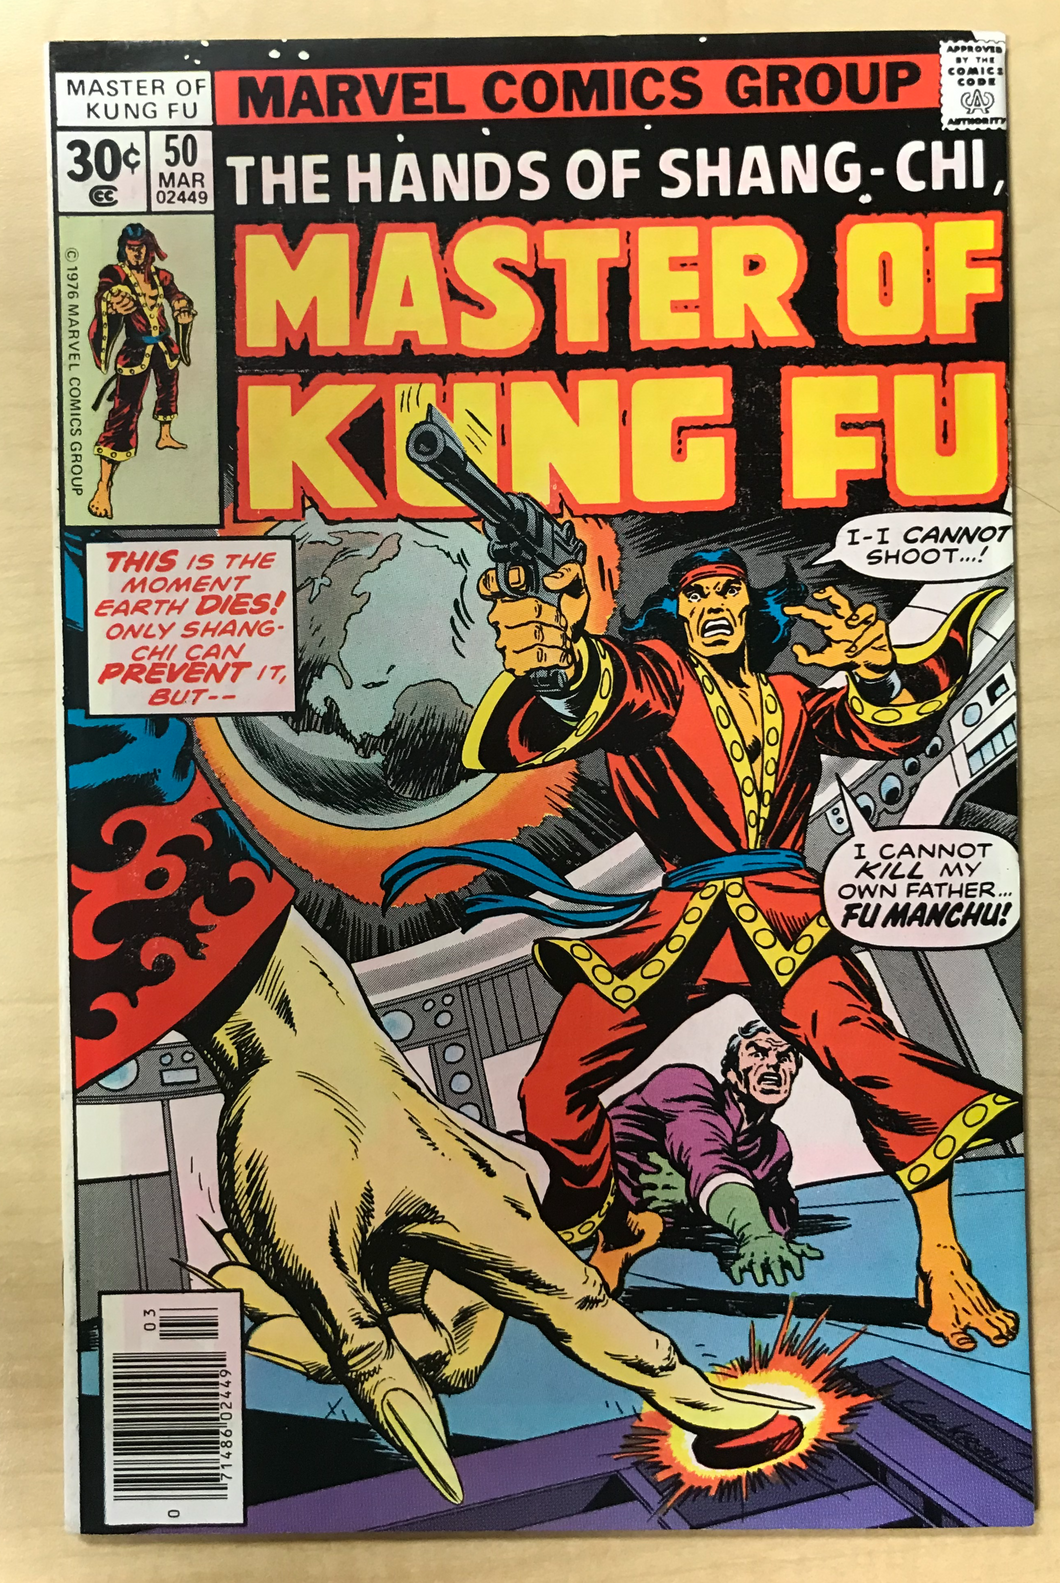 Master of Kung Fu (vol. 1) #50 Dave Cockrum Cover Marvel March 1977 VF Shang-Chi Fu Manchu